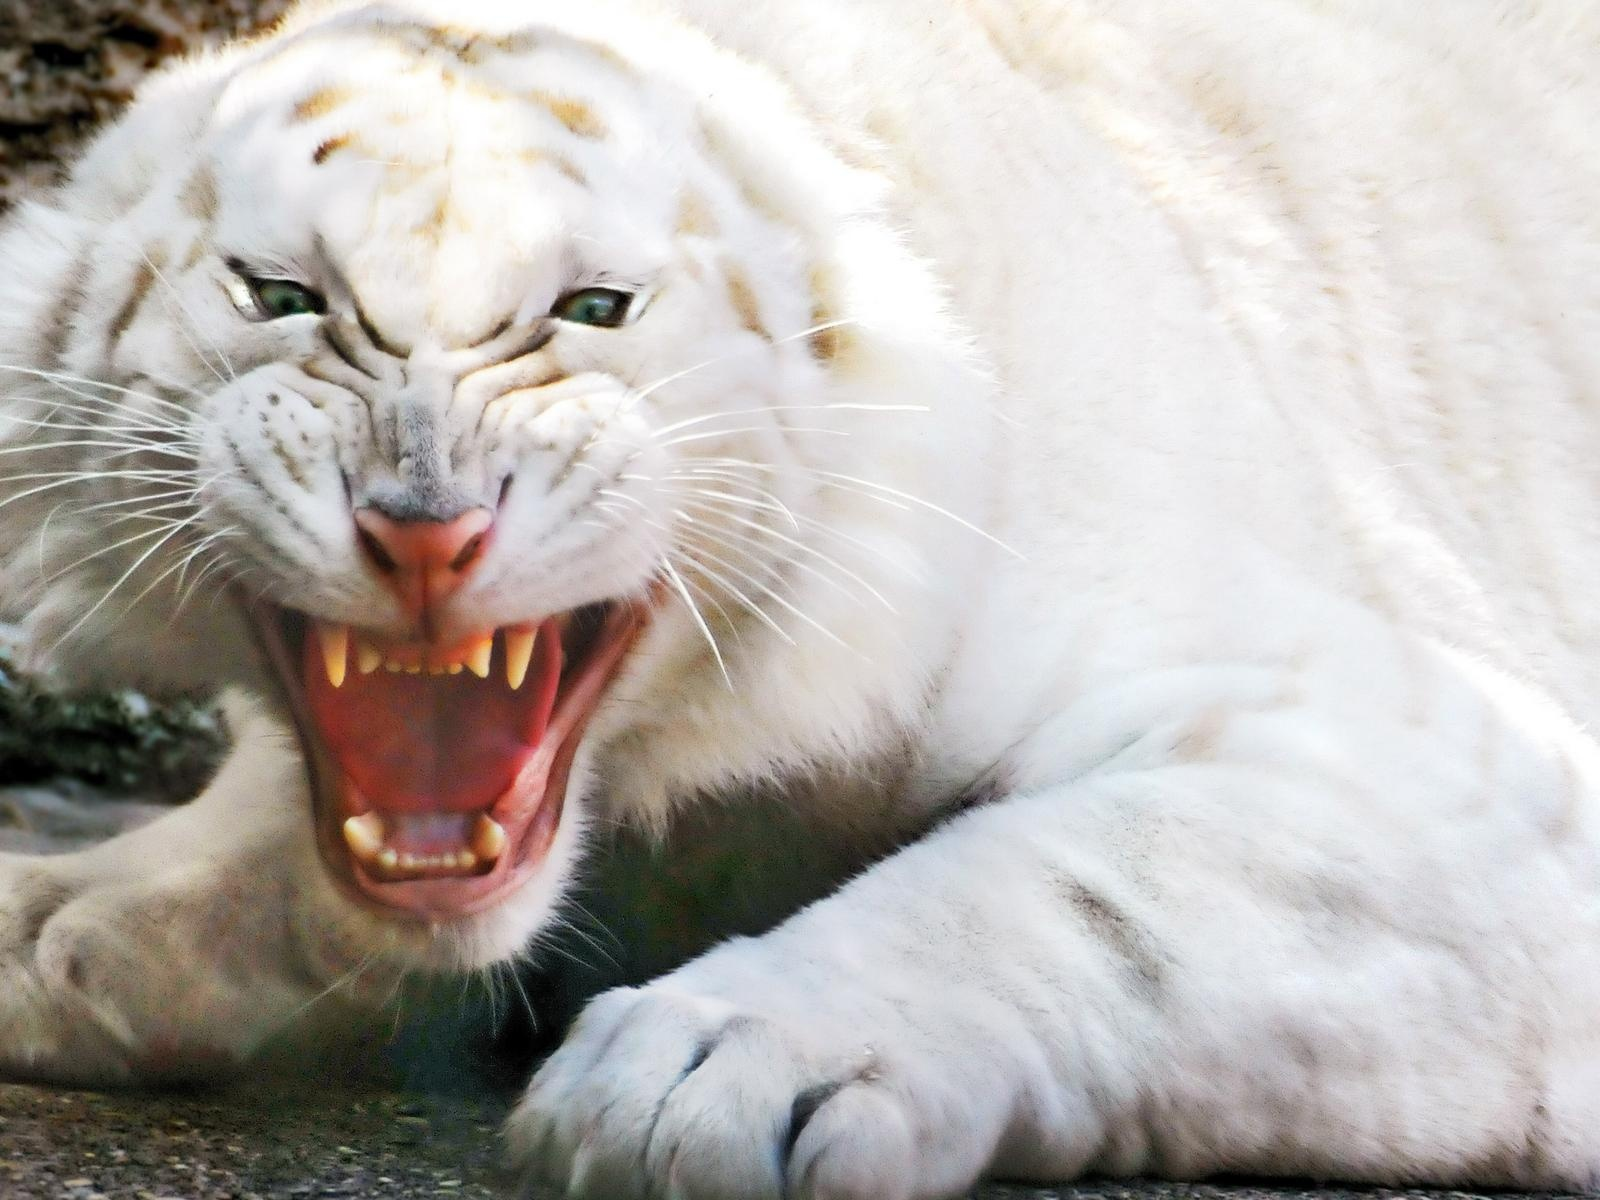 Scary Animal Wallpapers: Scary Animal Post, An Angry White Tiger Is Screaming